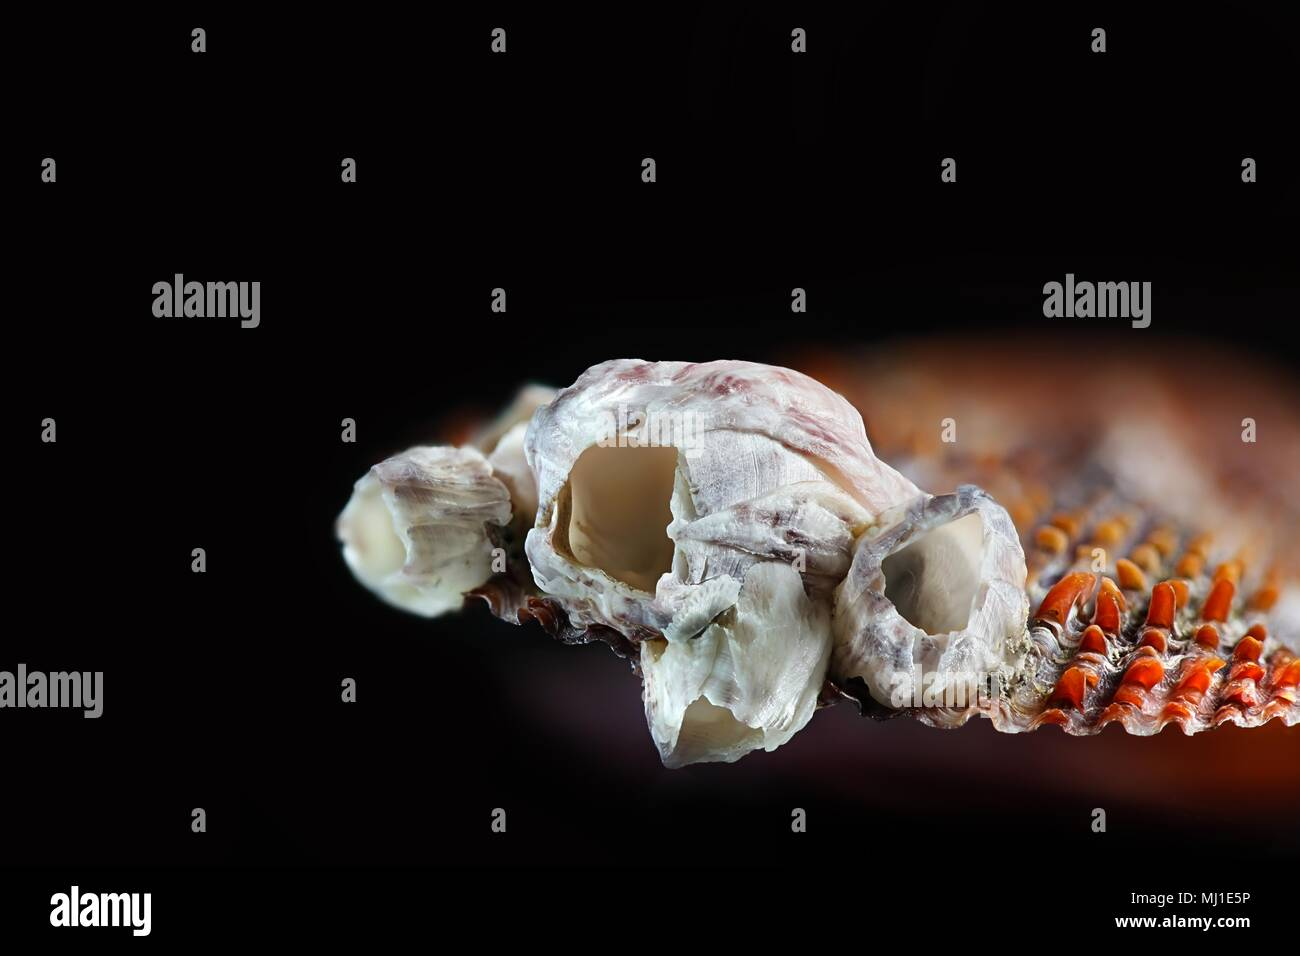 Acorn bay barnacle, Amphibalanus improvisus, an  invasive harmful species - Stock Image